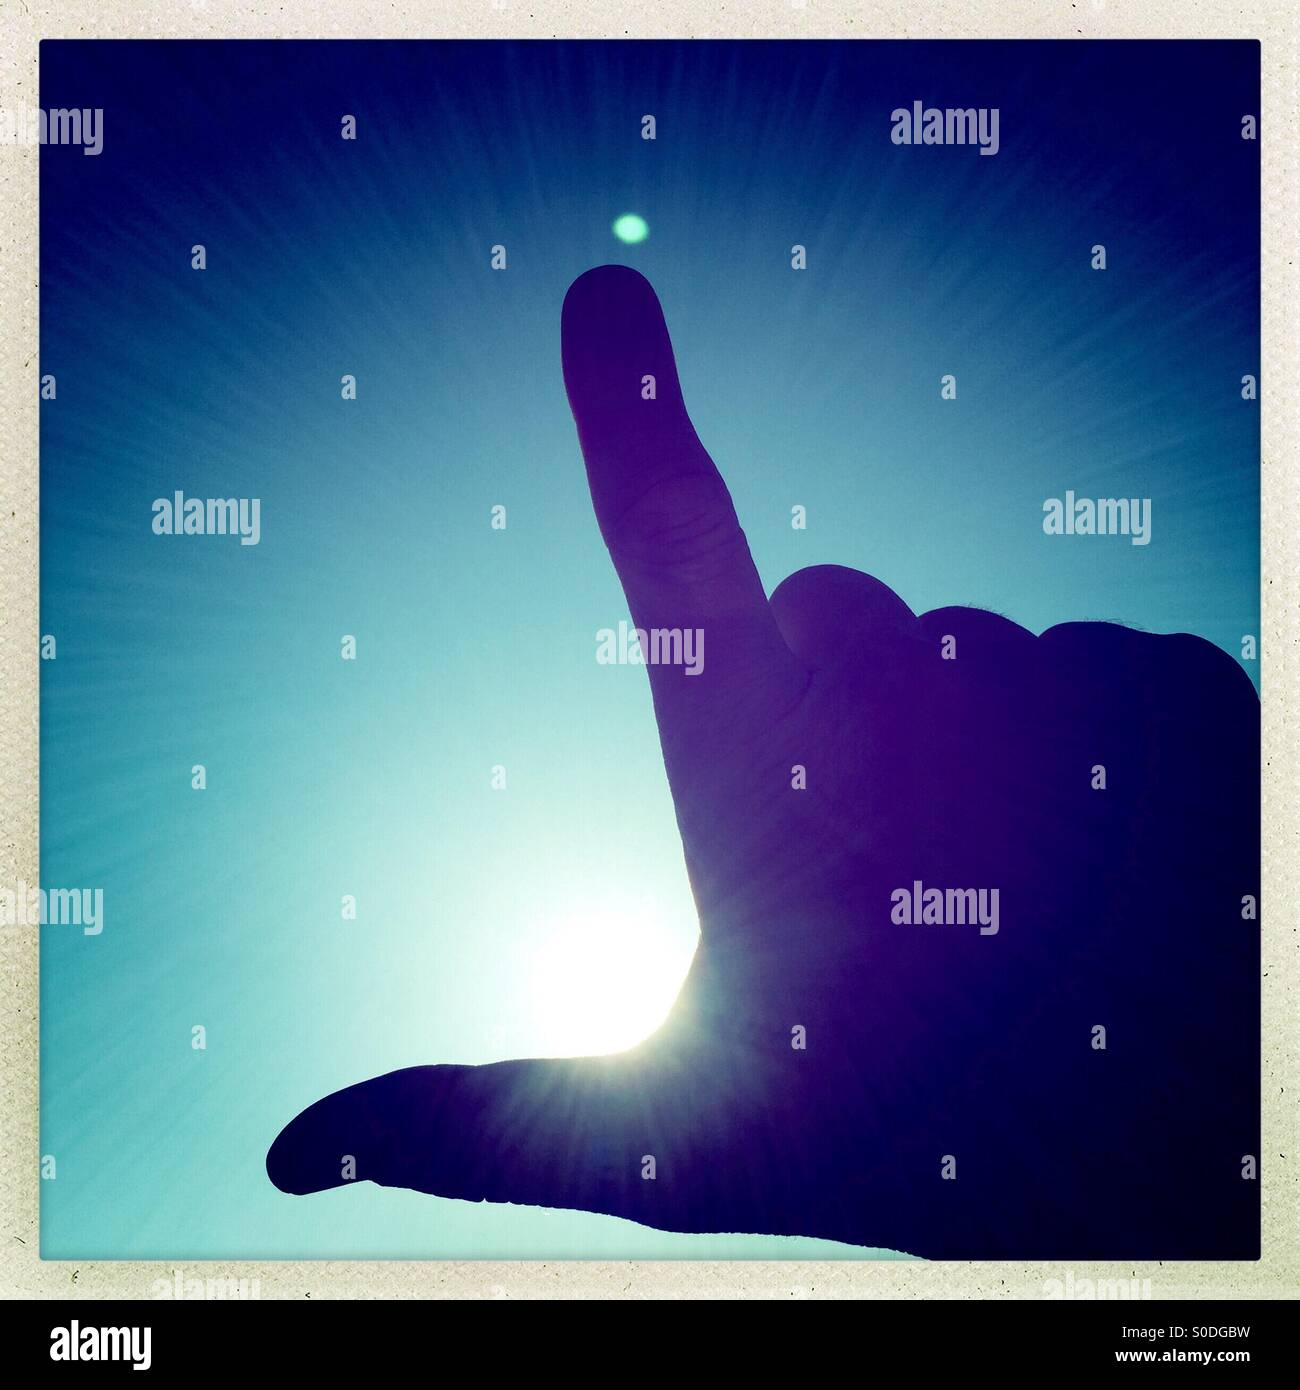 Silhouette of thumb and index finger pointing towards sun - Stock Image